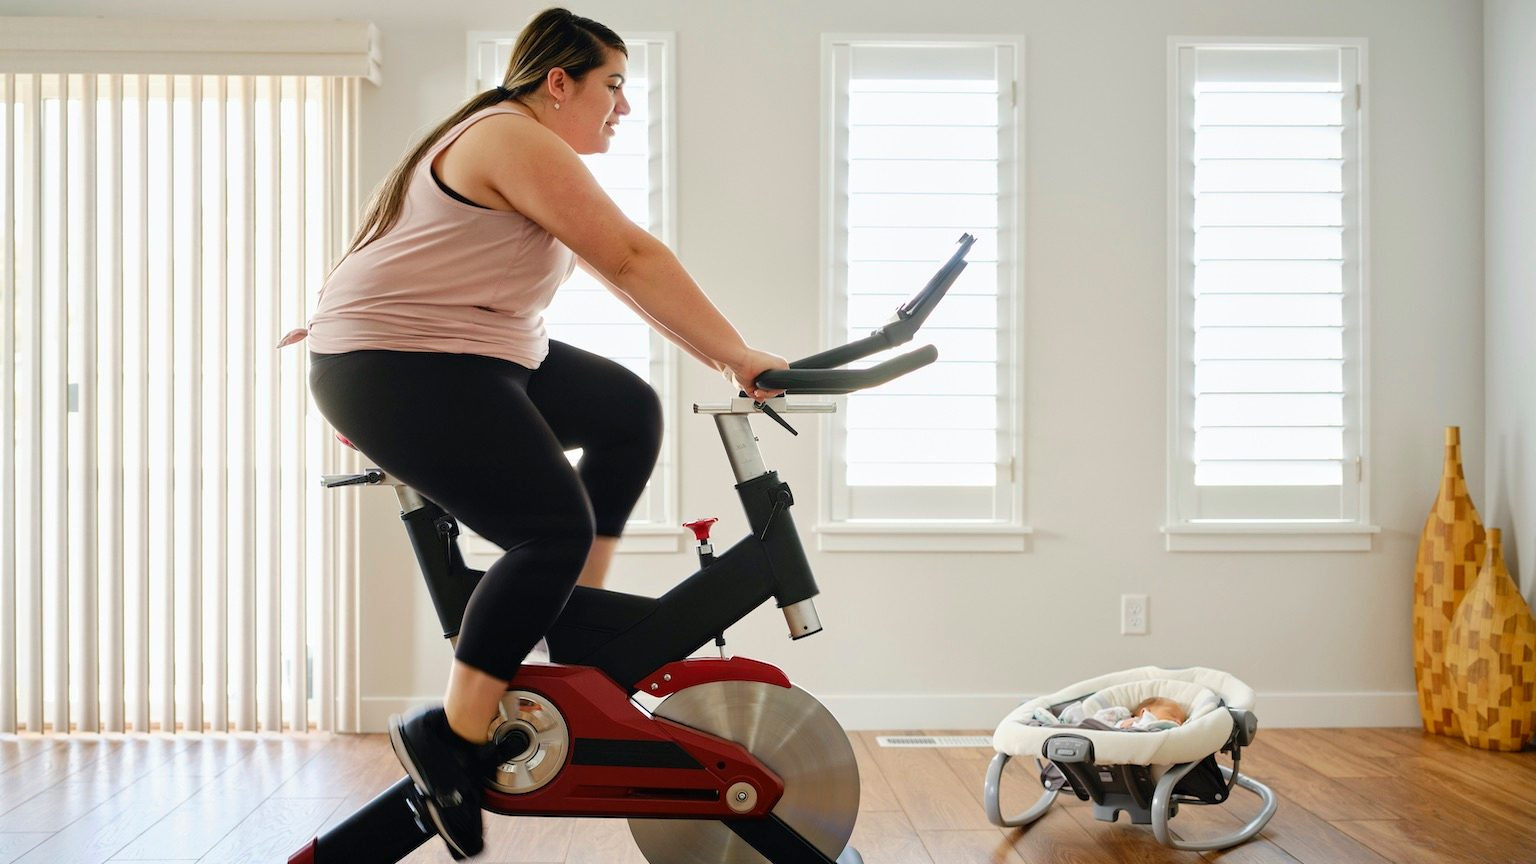 A young mother exercising in her home on an exercise bike.